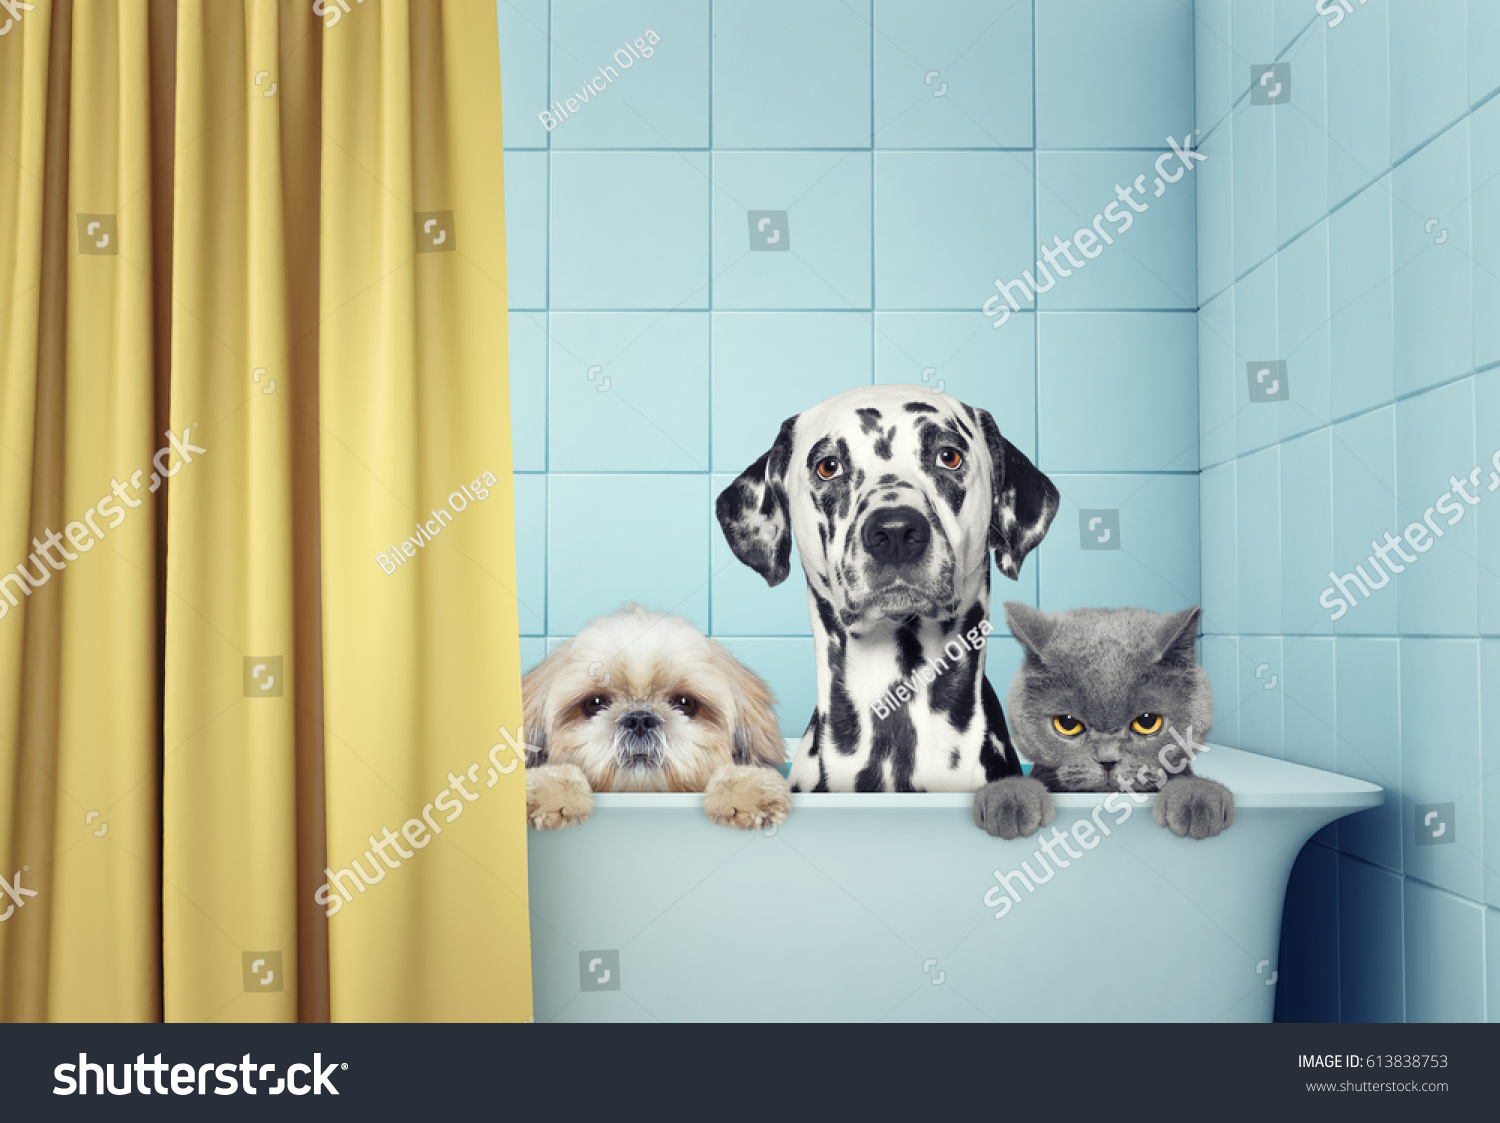 Cute Two Dogs Cat Bath Stock Photo (Edit Now) 613838753 - Shutterstock